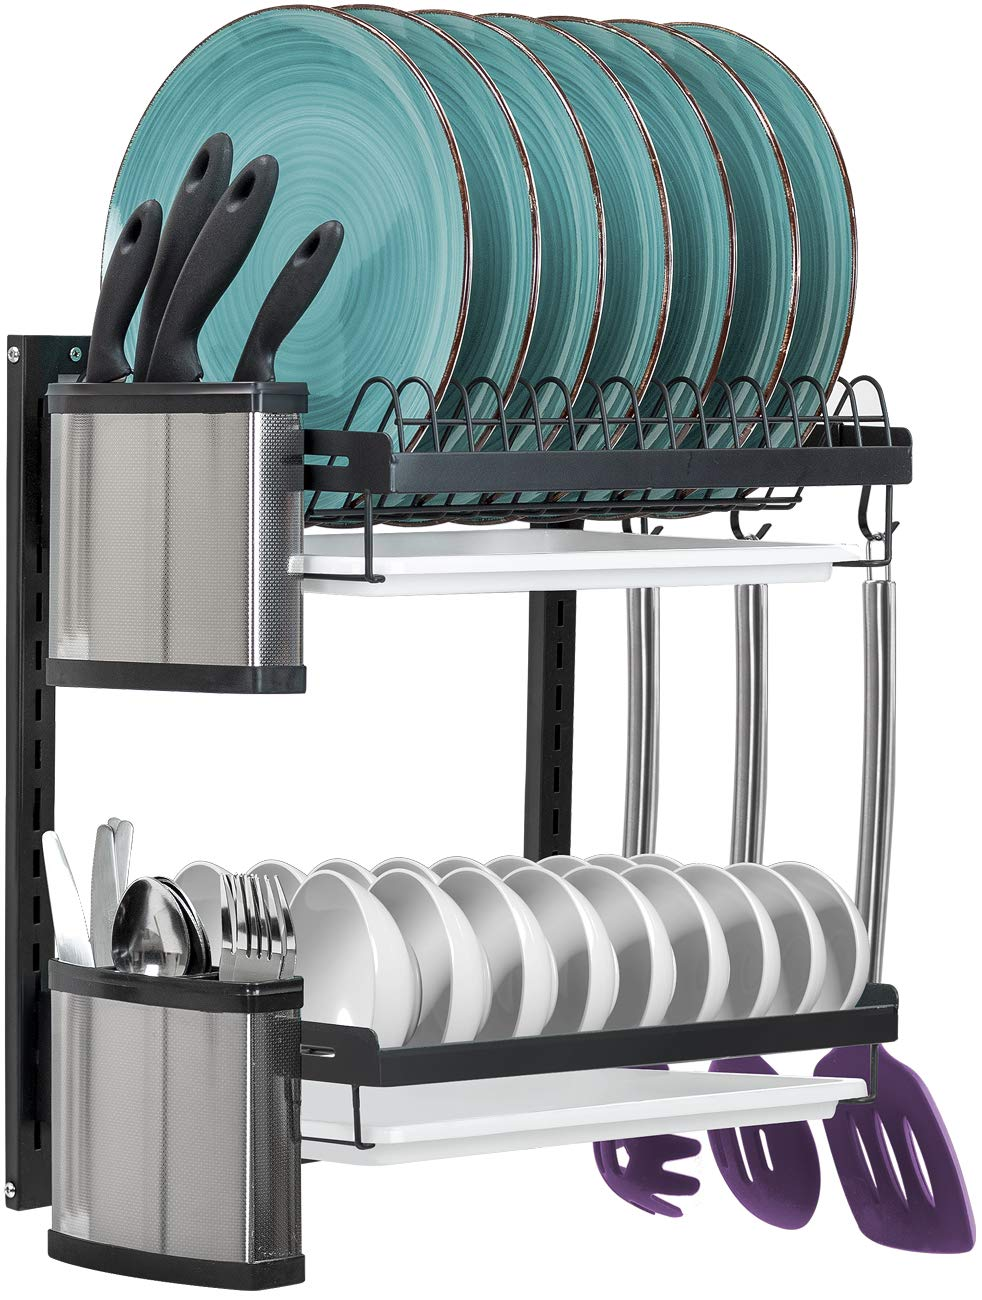 Sorbus Dish Drying Rack, 2-Tier Hanging Wall Mount Drying Plate Organizer Storage Shelf for Bowls, Utensils, Includes Drain Trays and 3 Hooks for Kitchen Sink, Metal (Black)